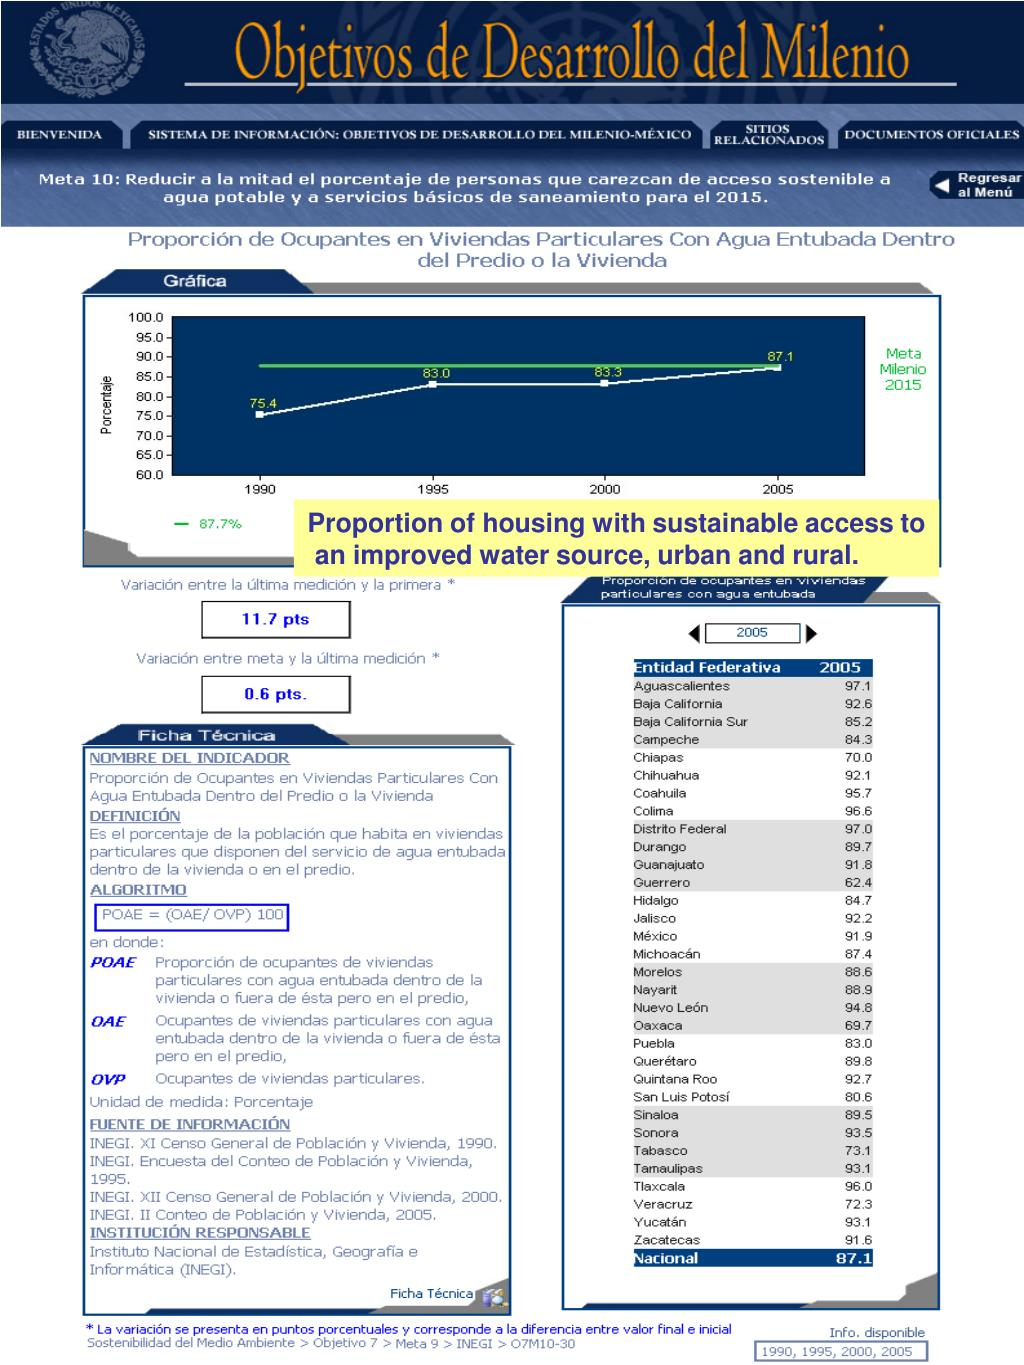 Proportion of housing with sustainable access to